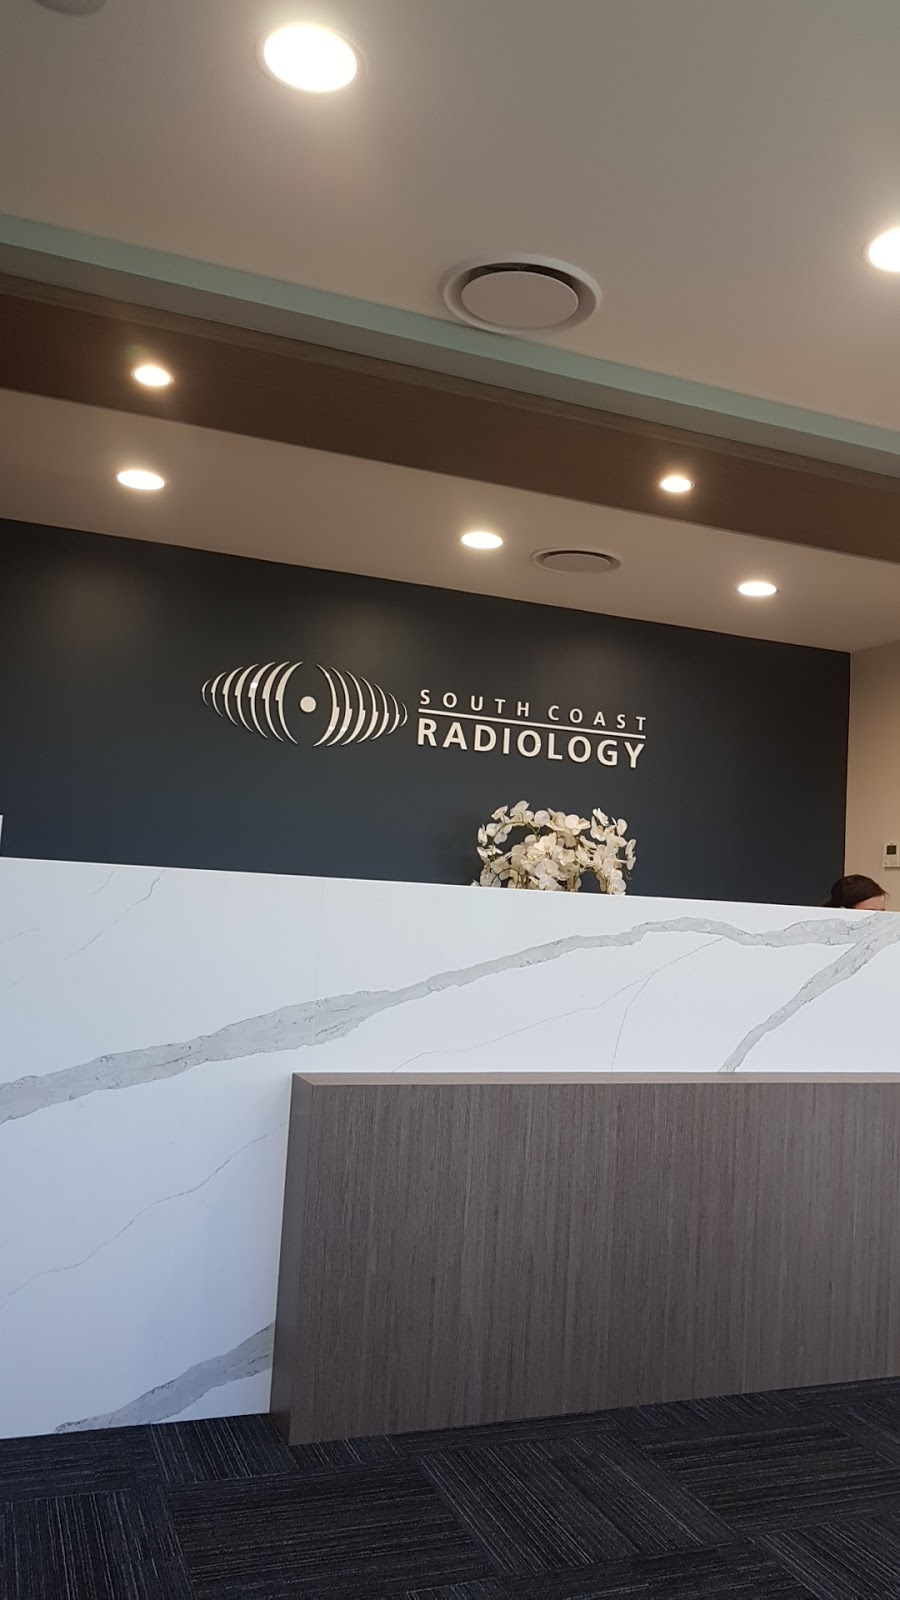 South Coast Radiology | doctor | 151 Smith St Motorway, Southport QLD 4215, Australia | 0756104320 OR +61 7 5610 4320